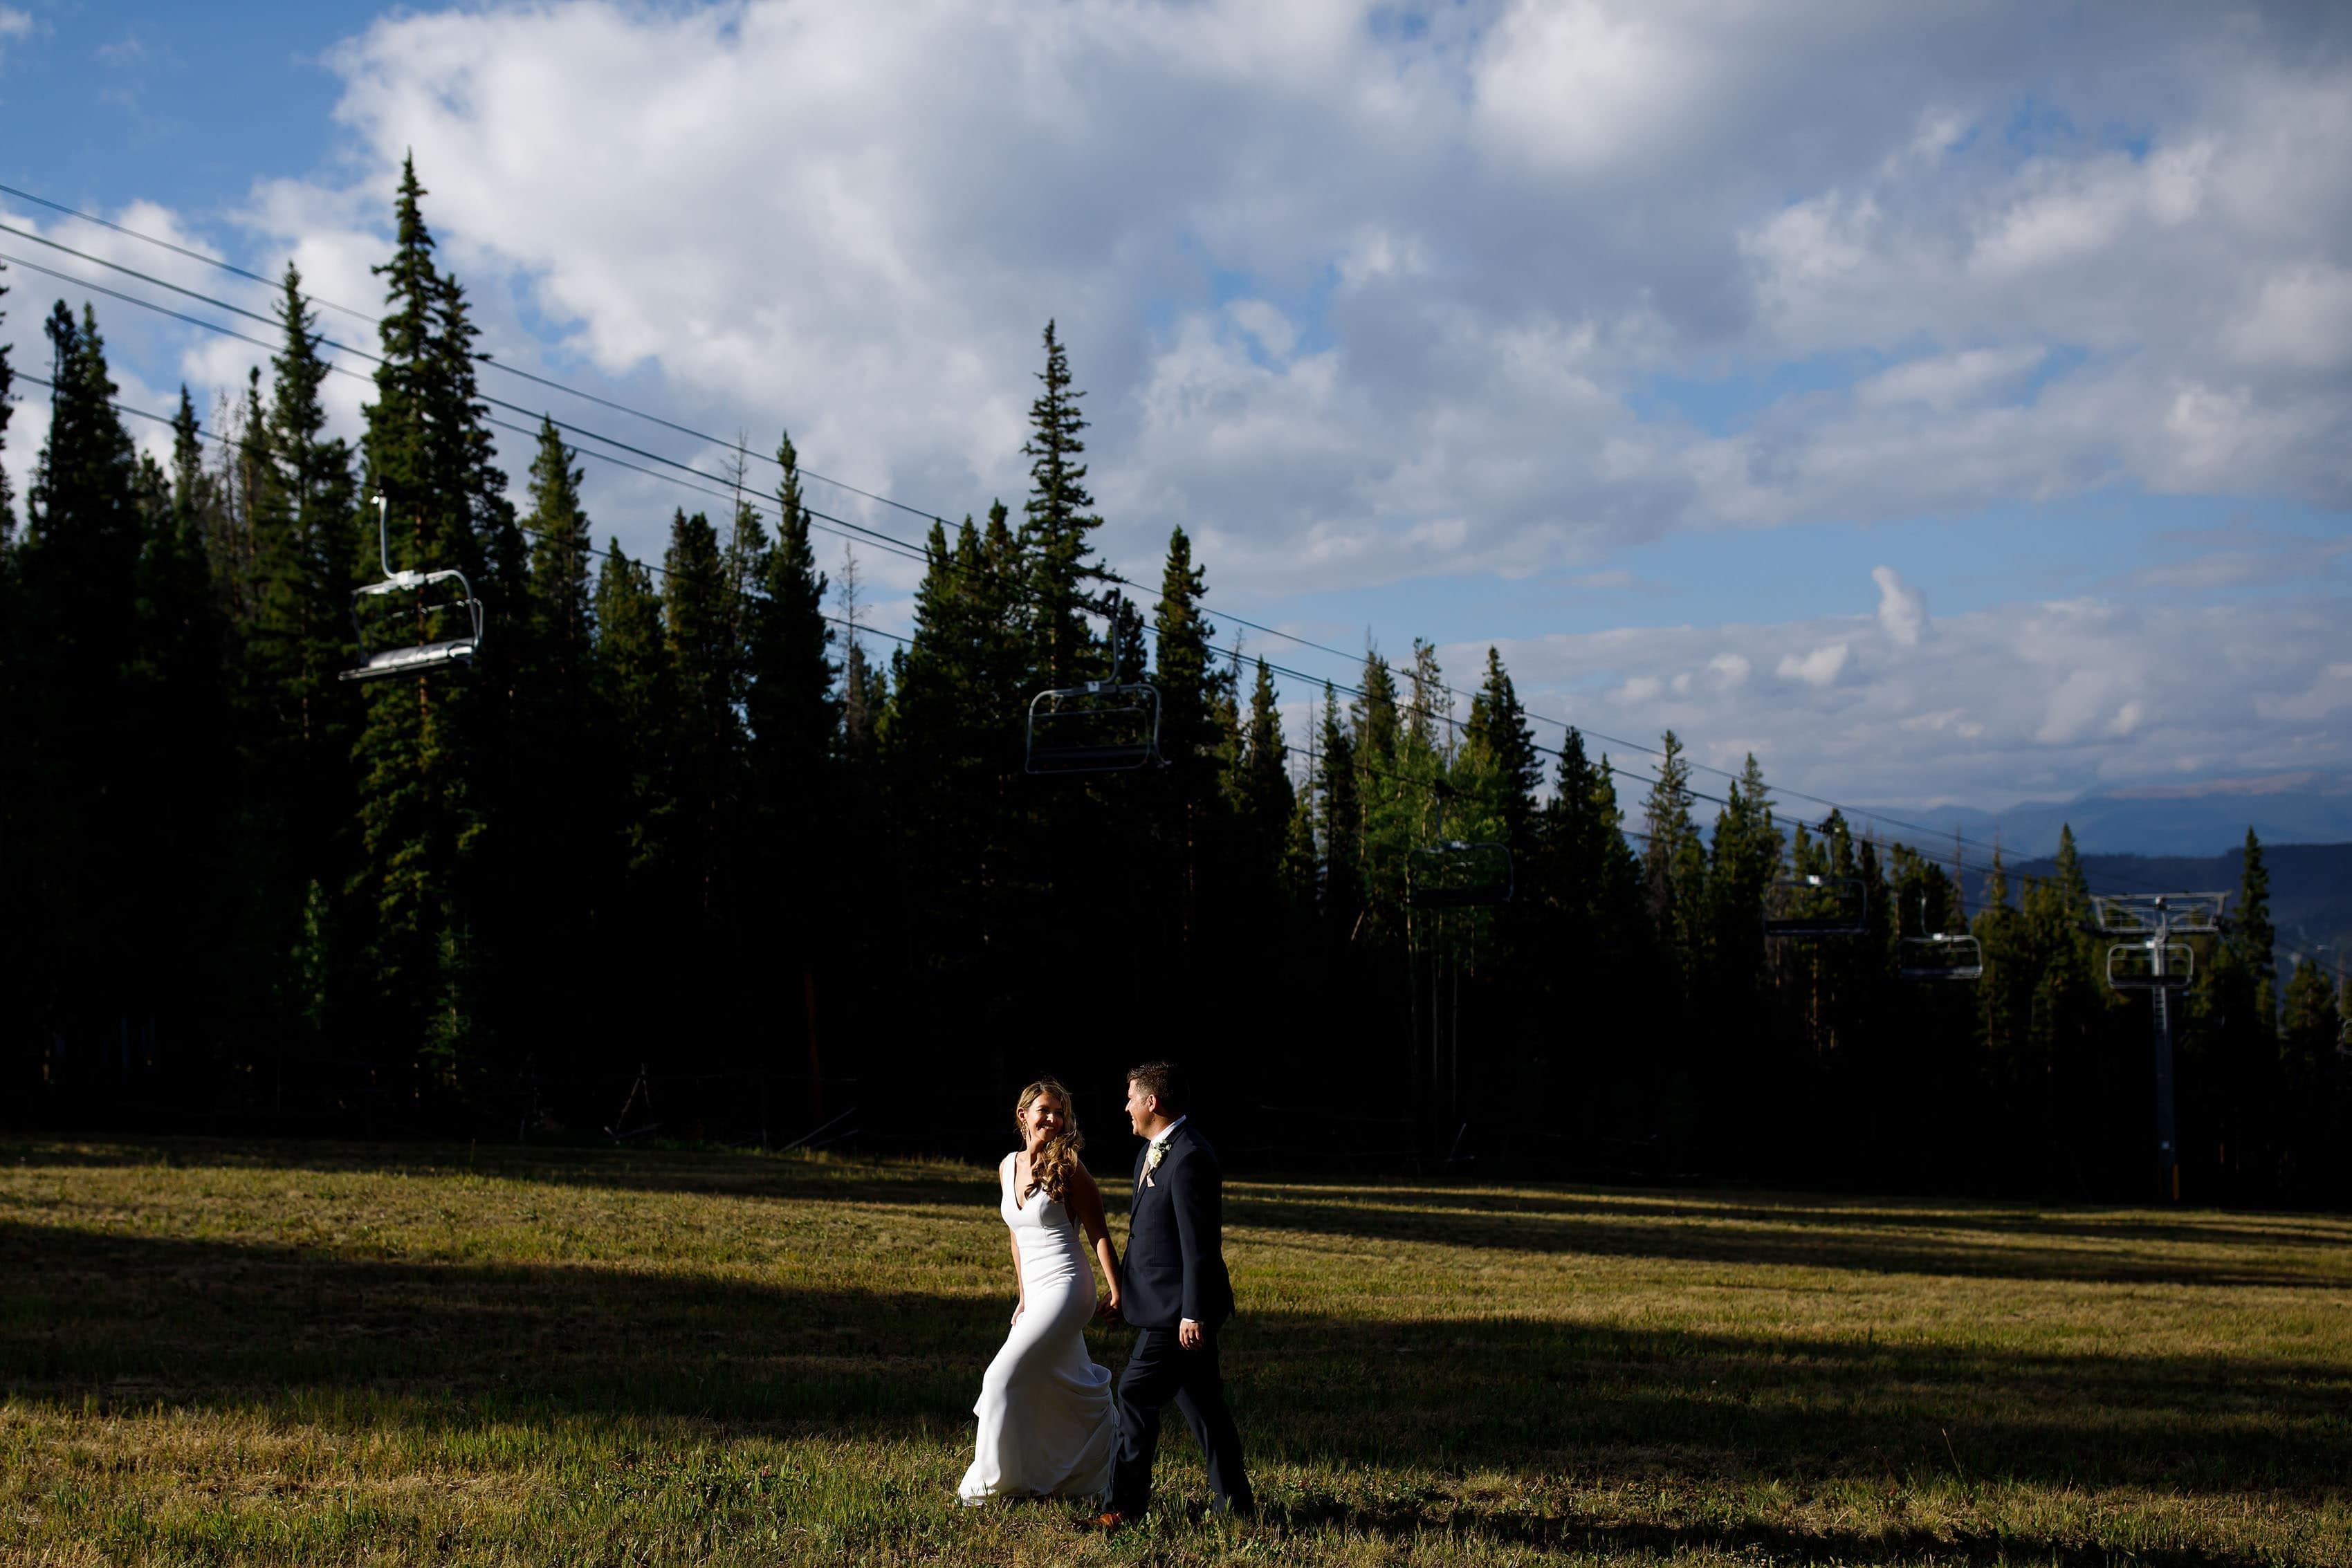 Heather and Matt walk together under the lift at TenMile Station